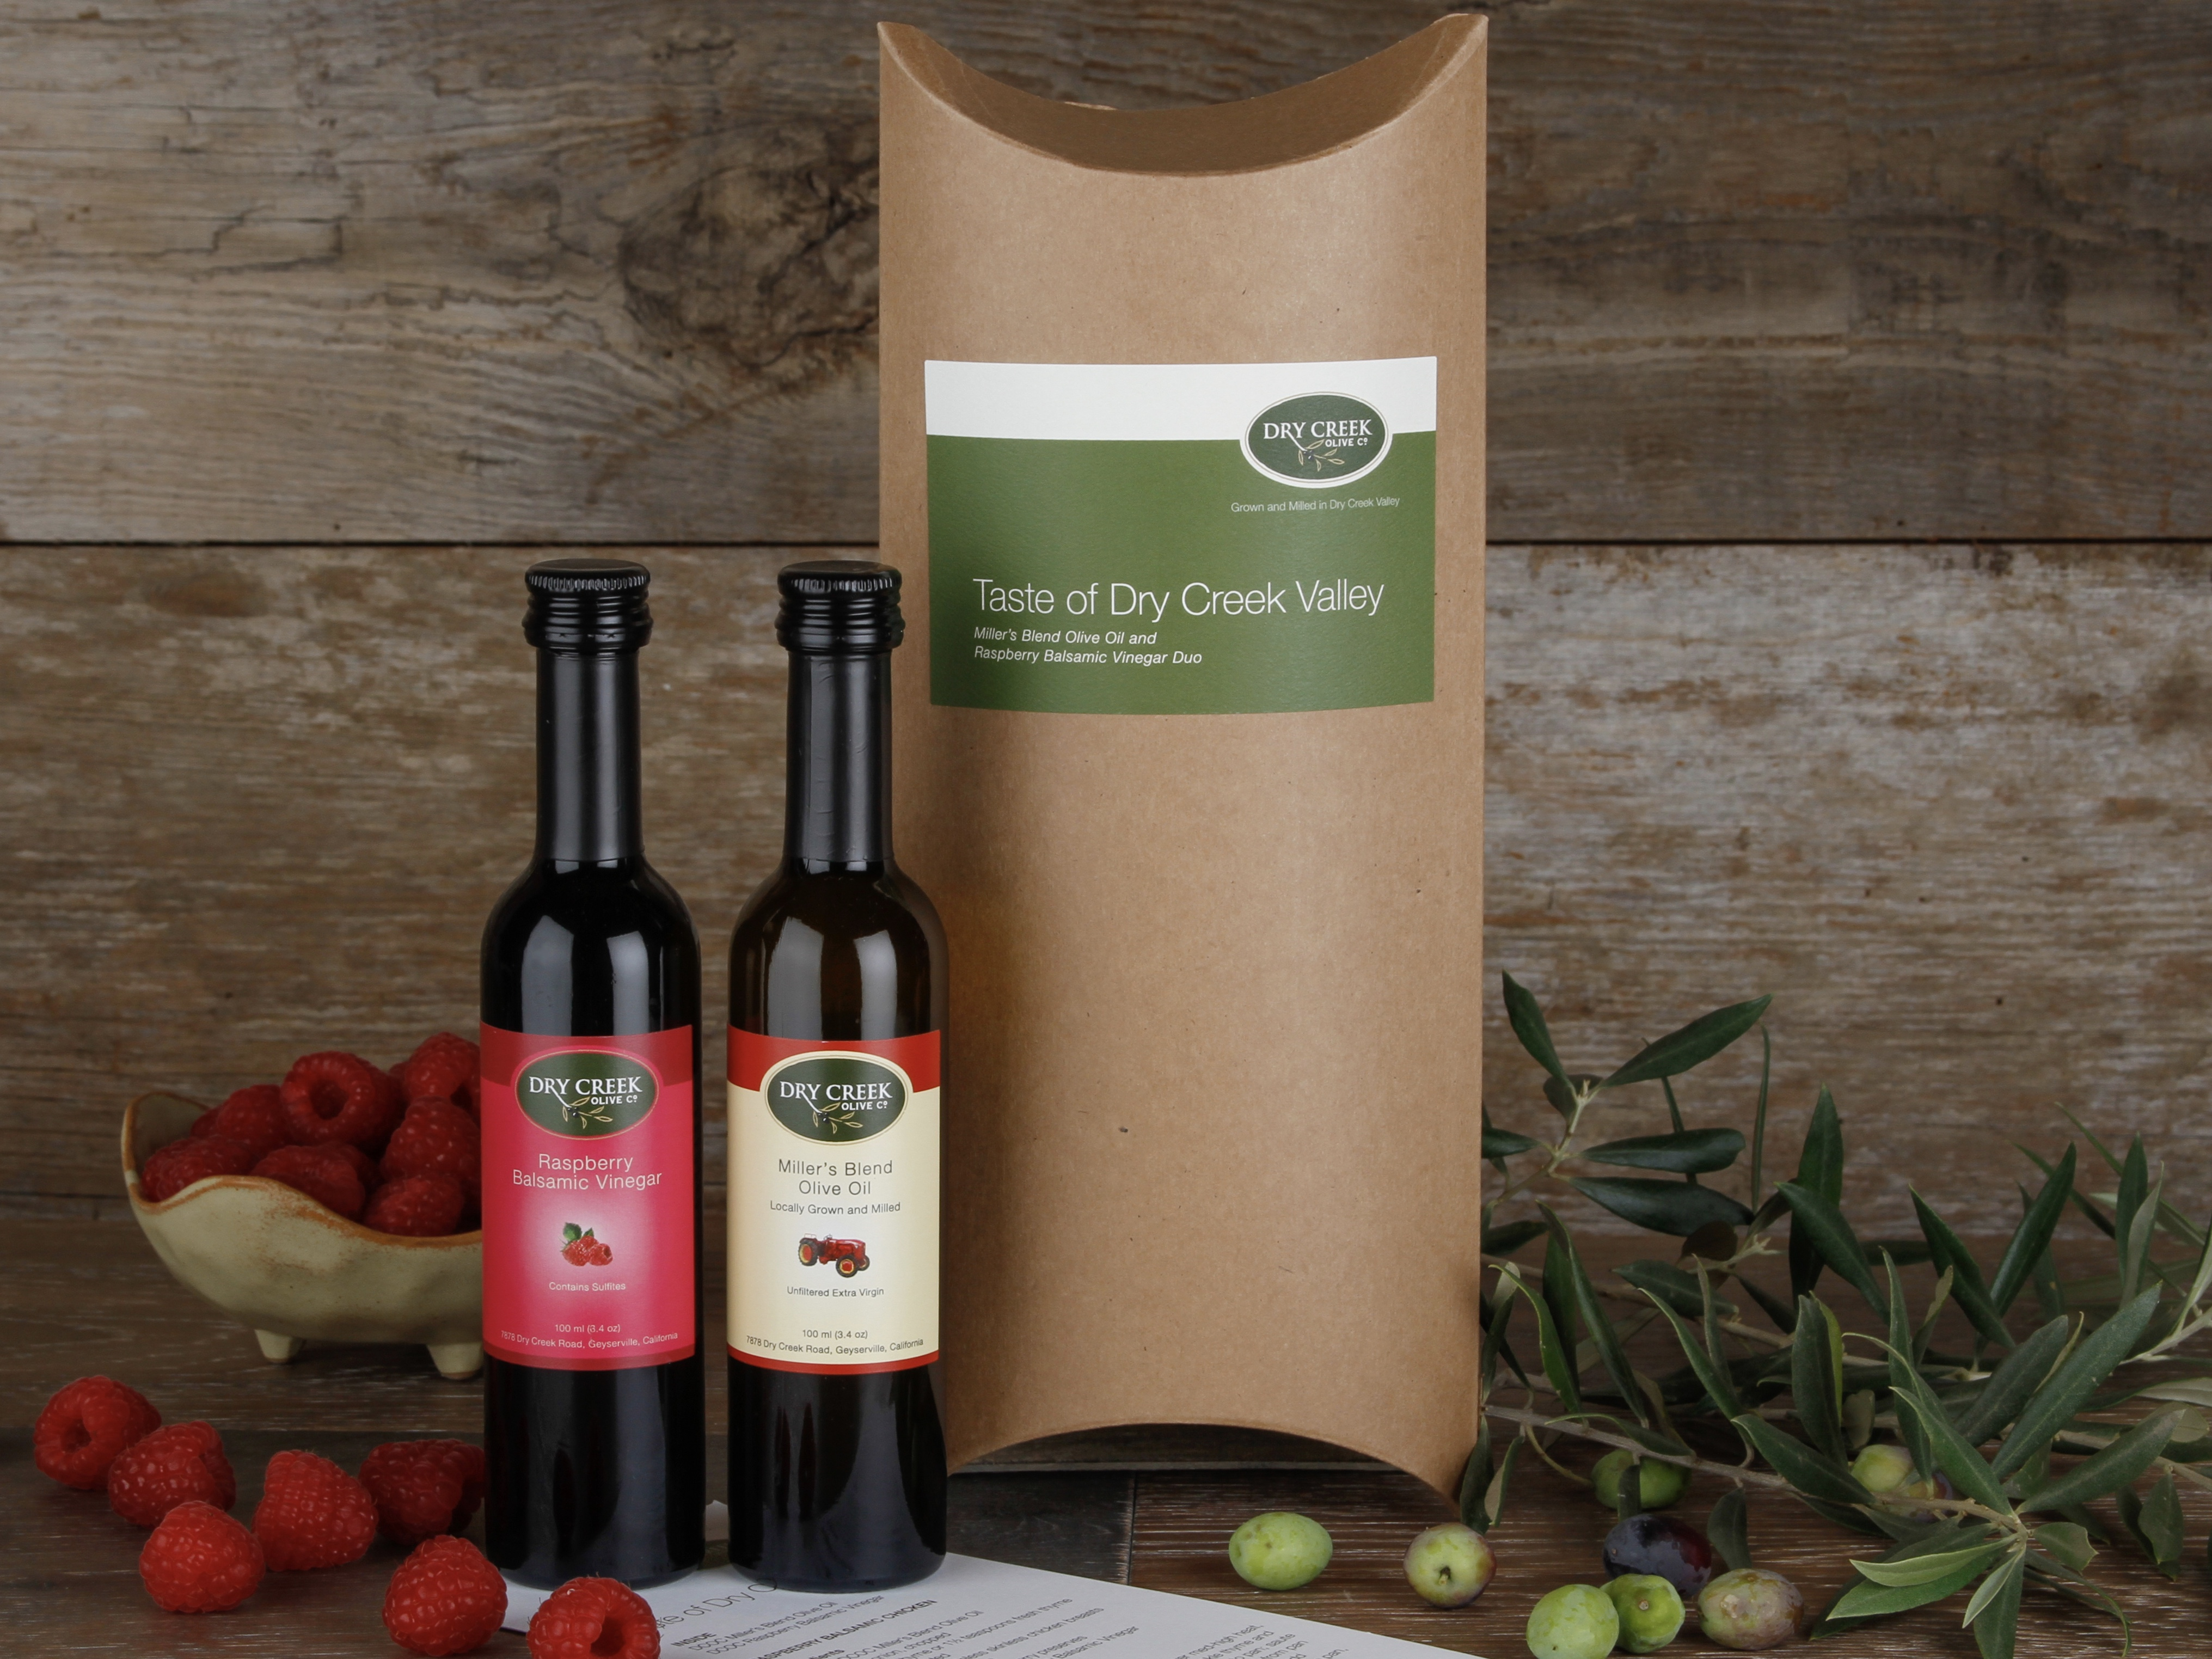 Taste of Dry Creek Valley Gift Sampler -